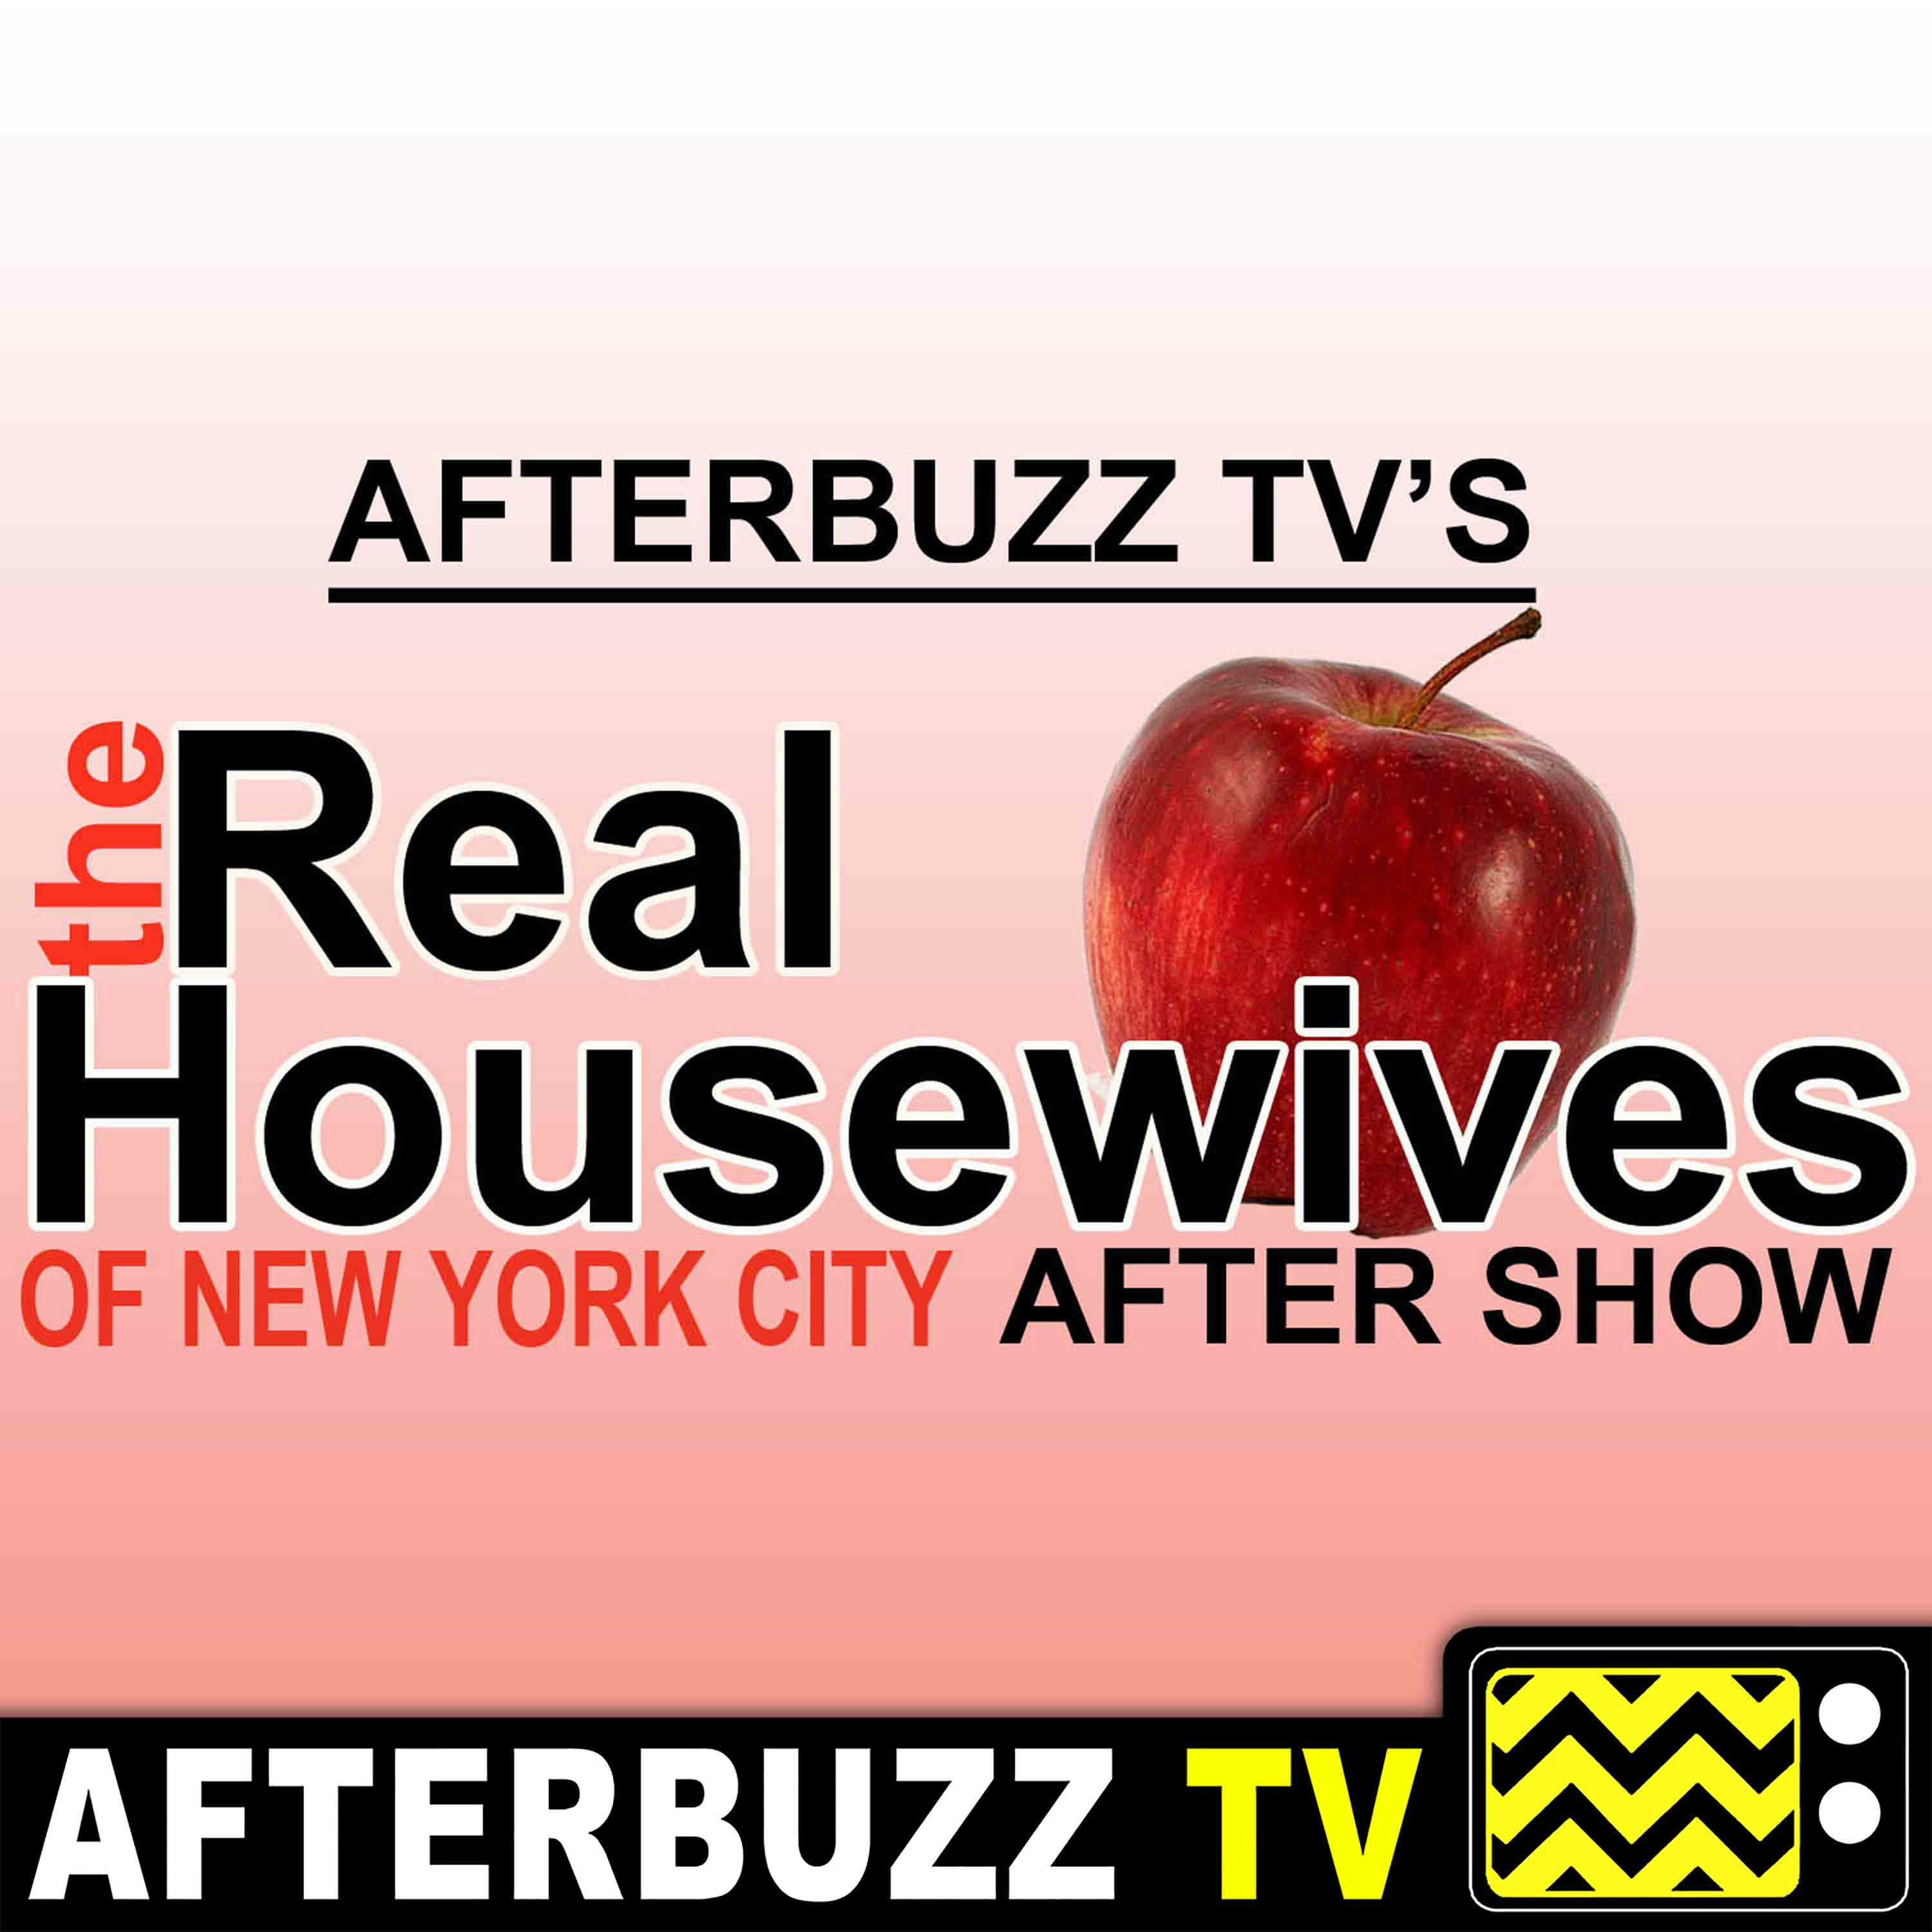 """""""It's Kind of a Phone-y Story"""" Season 11 Episode 7 'Real Housewives of NYC' Review"""